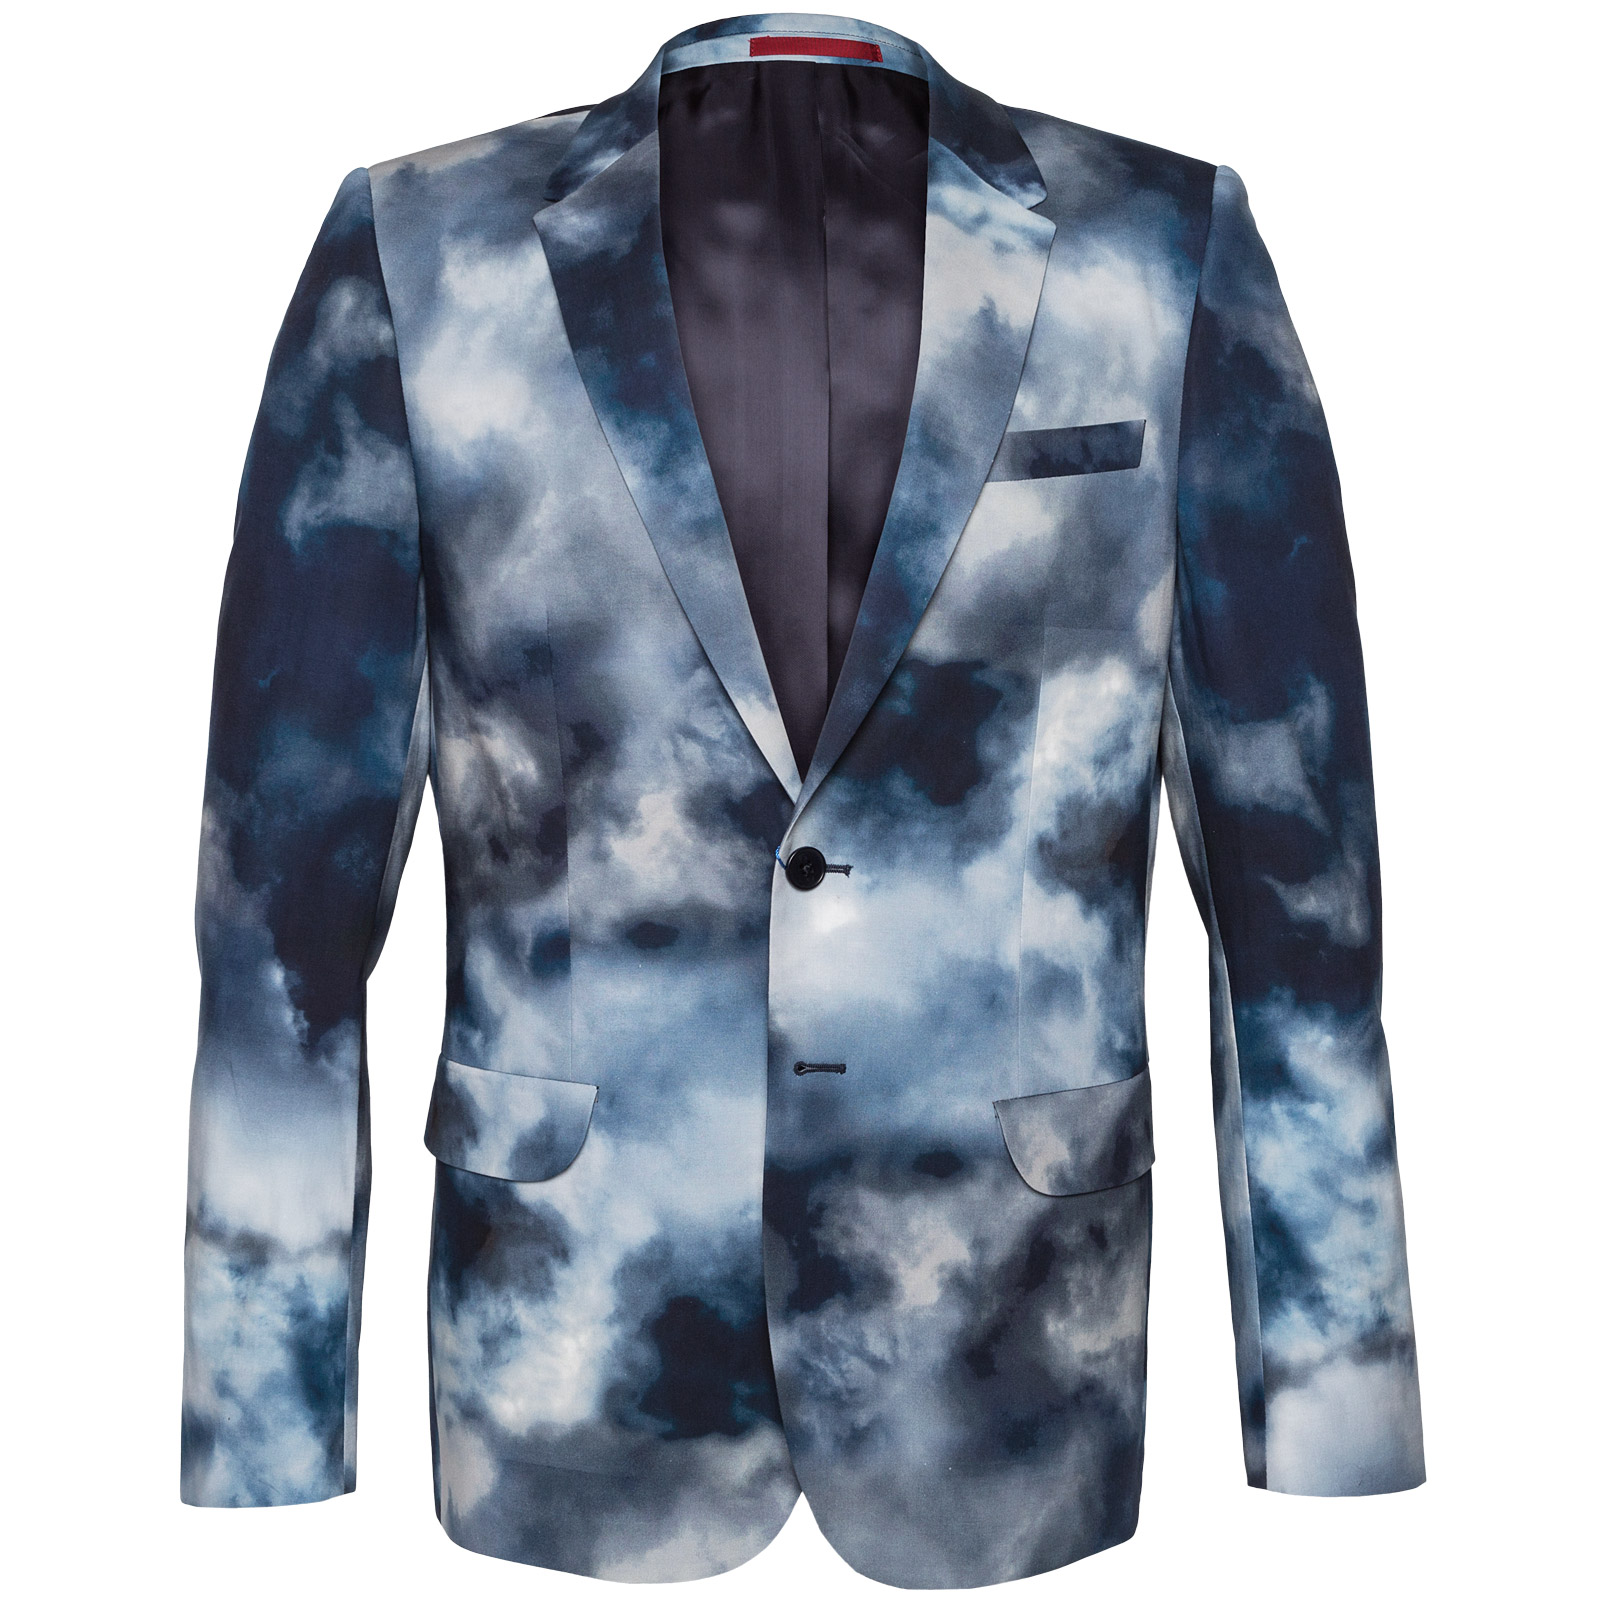 Cloud Print Stretch Dress Jacket - PS by PAUL SMITH 2014SS : Jackets ...